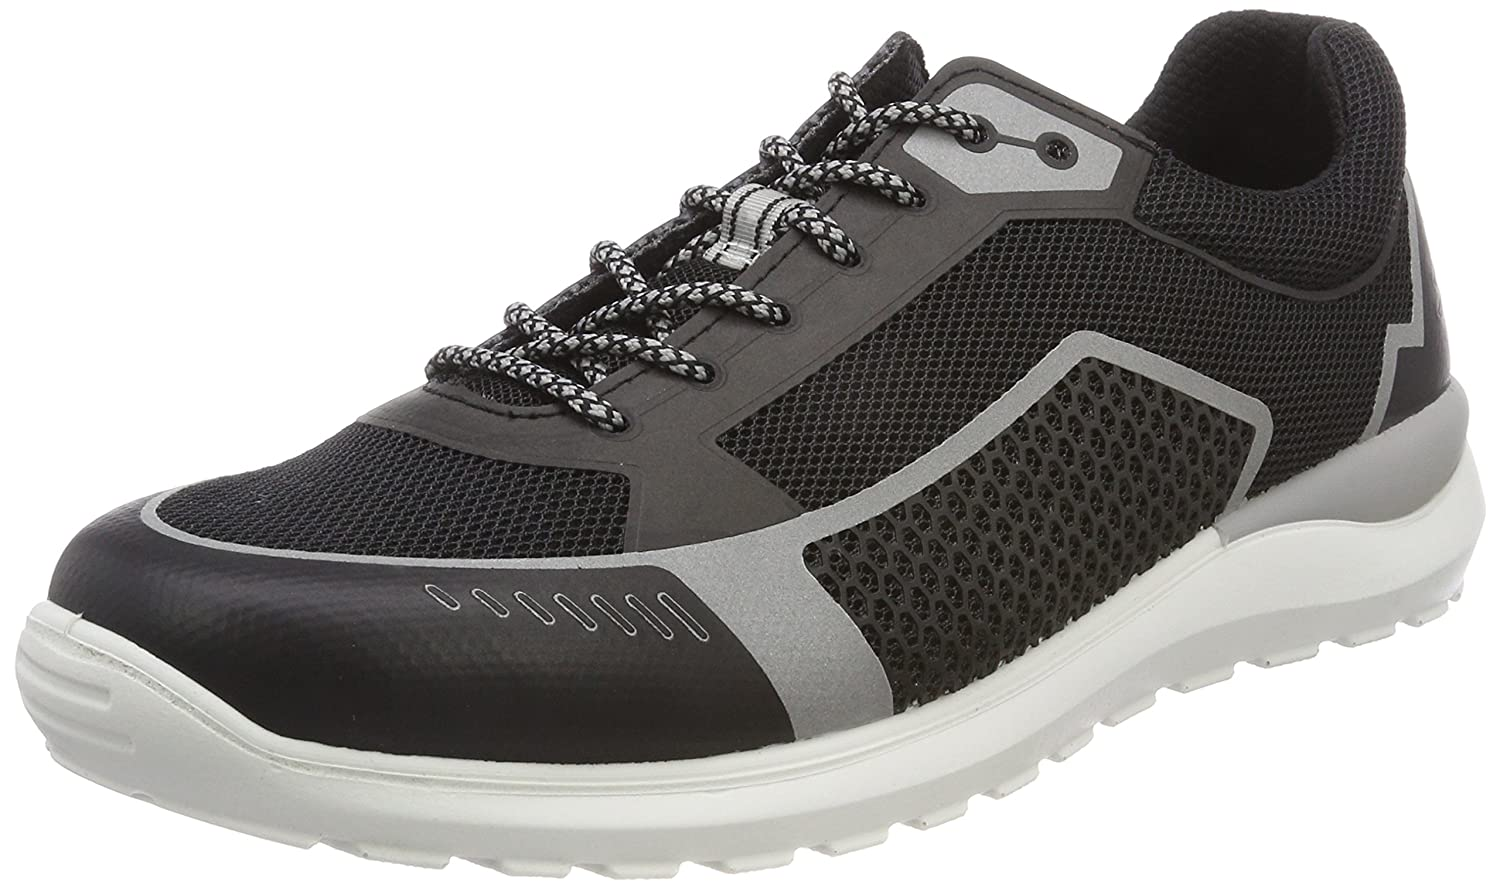 Mens Smash Trainers Ricosta 7epaGAri